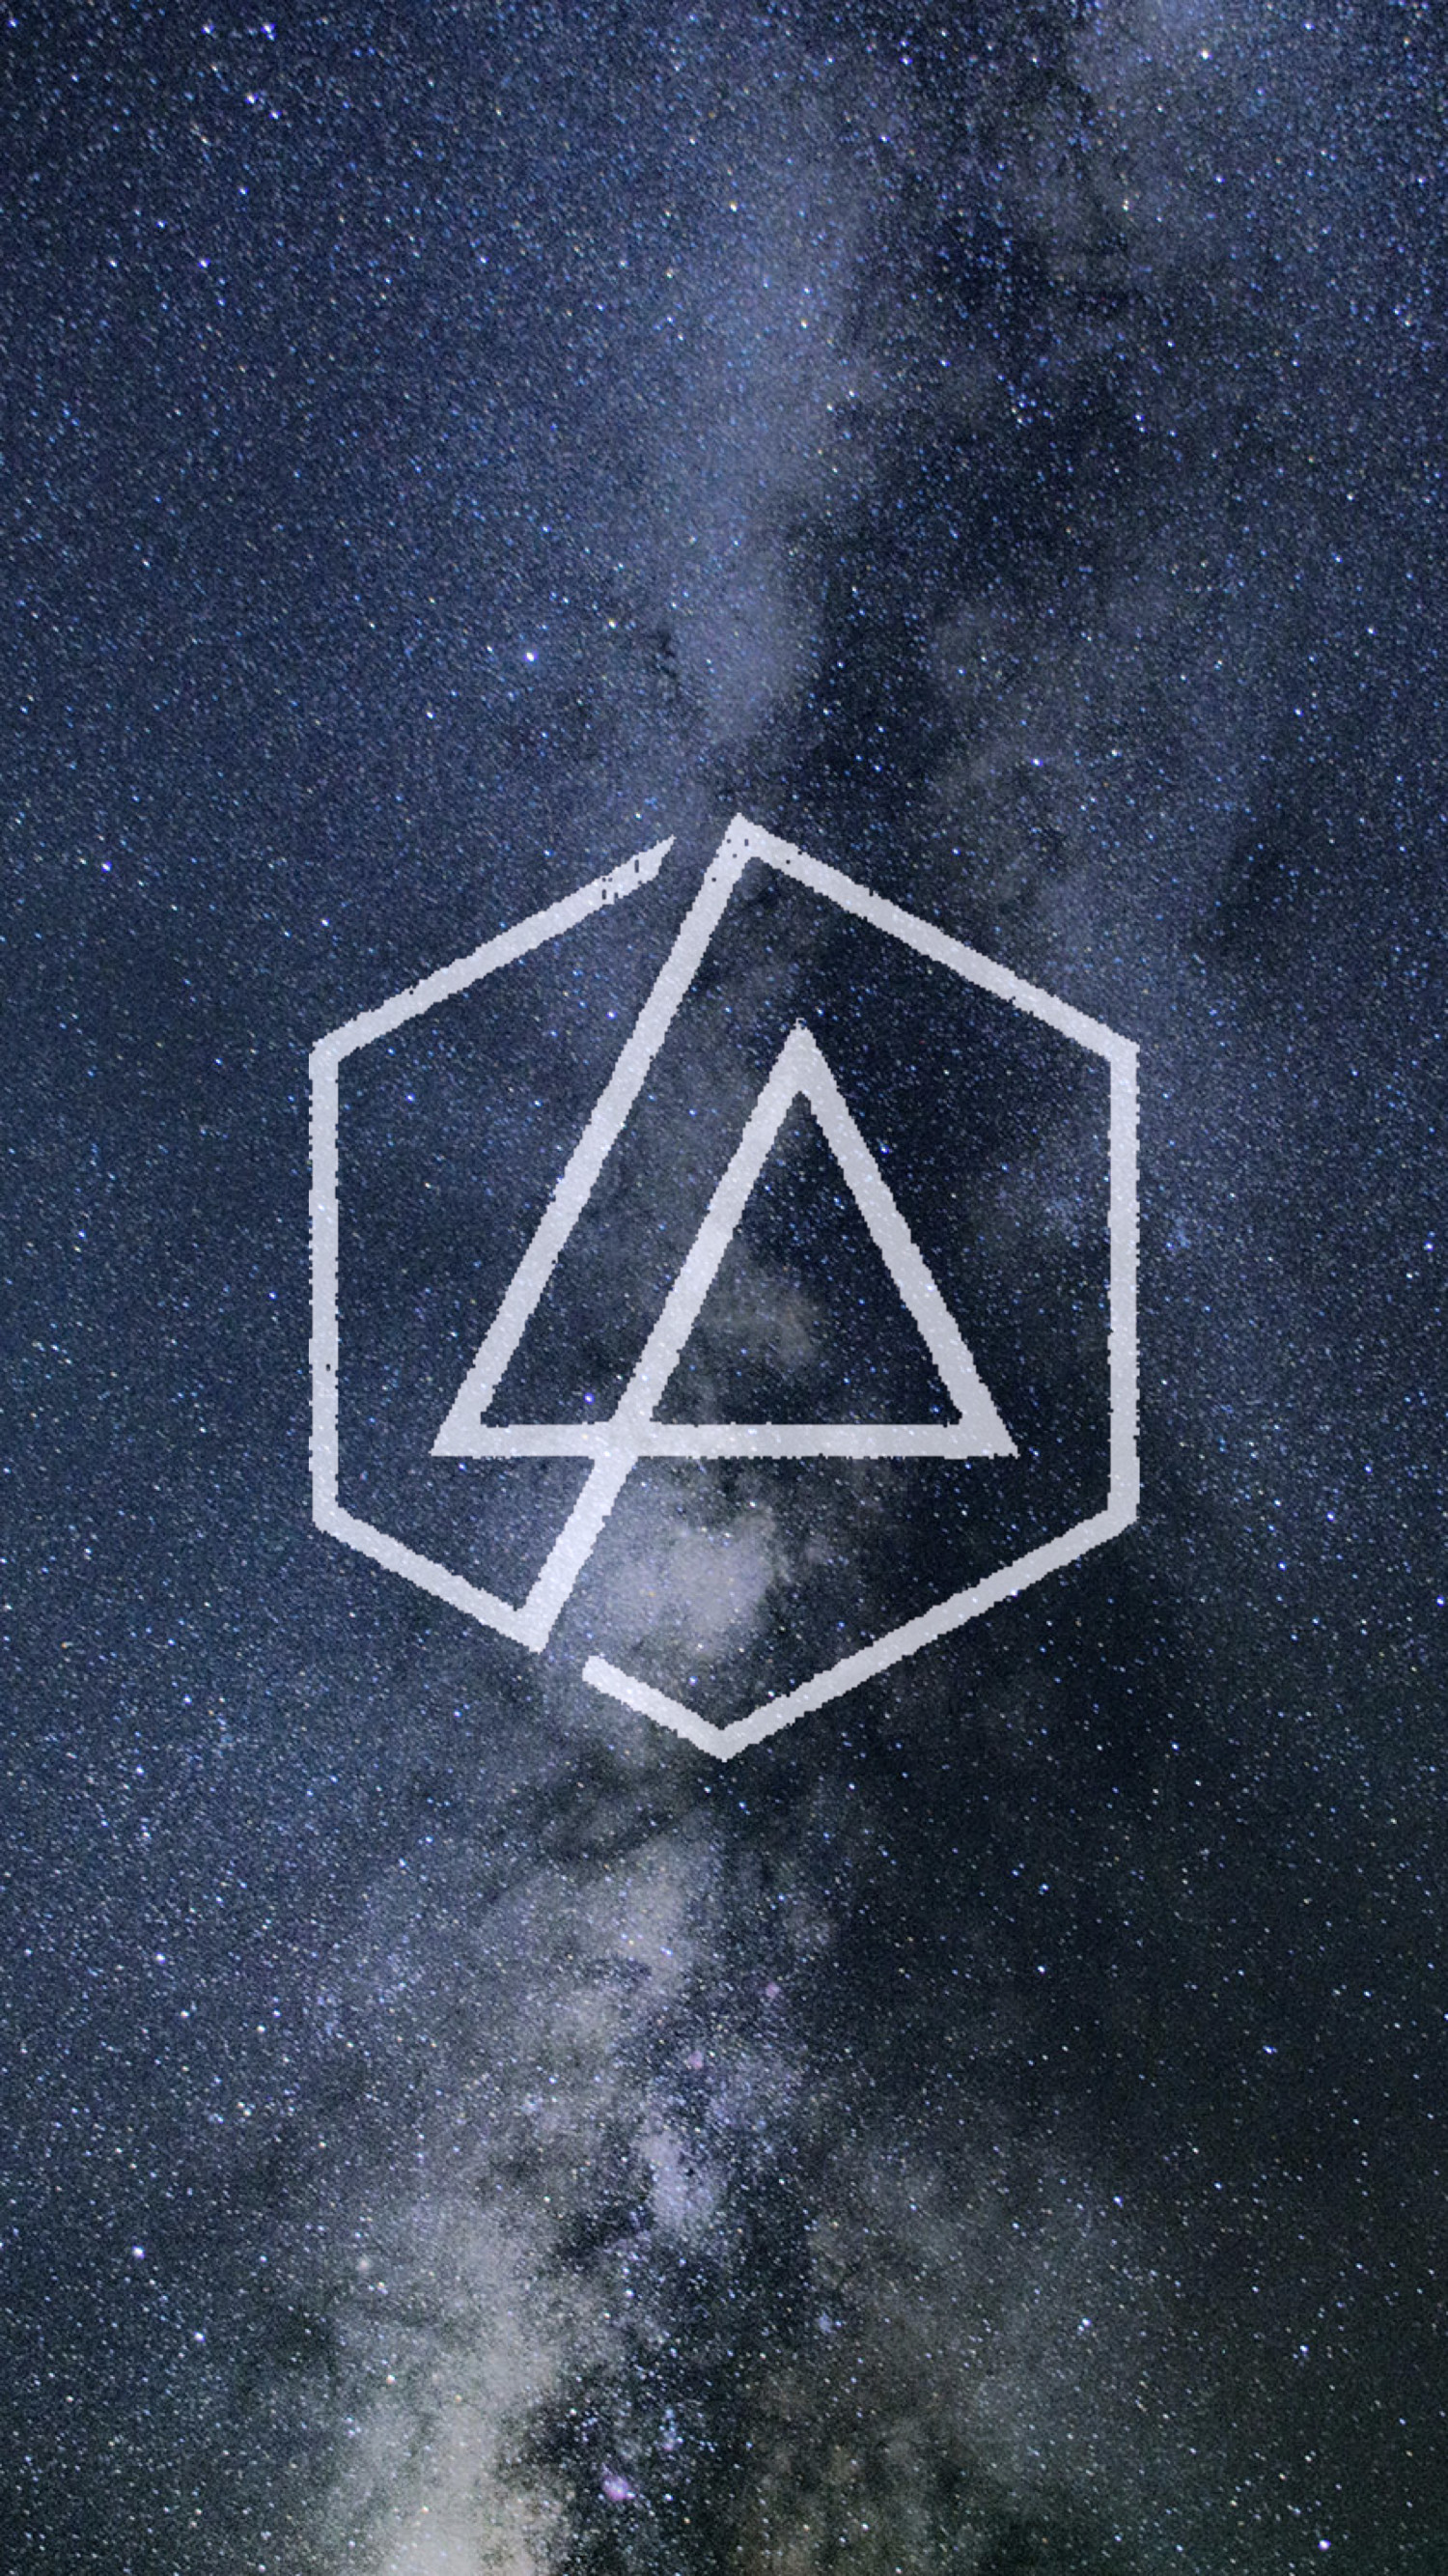 Galaxy Linkin Park Logo